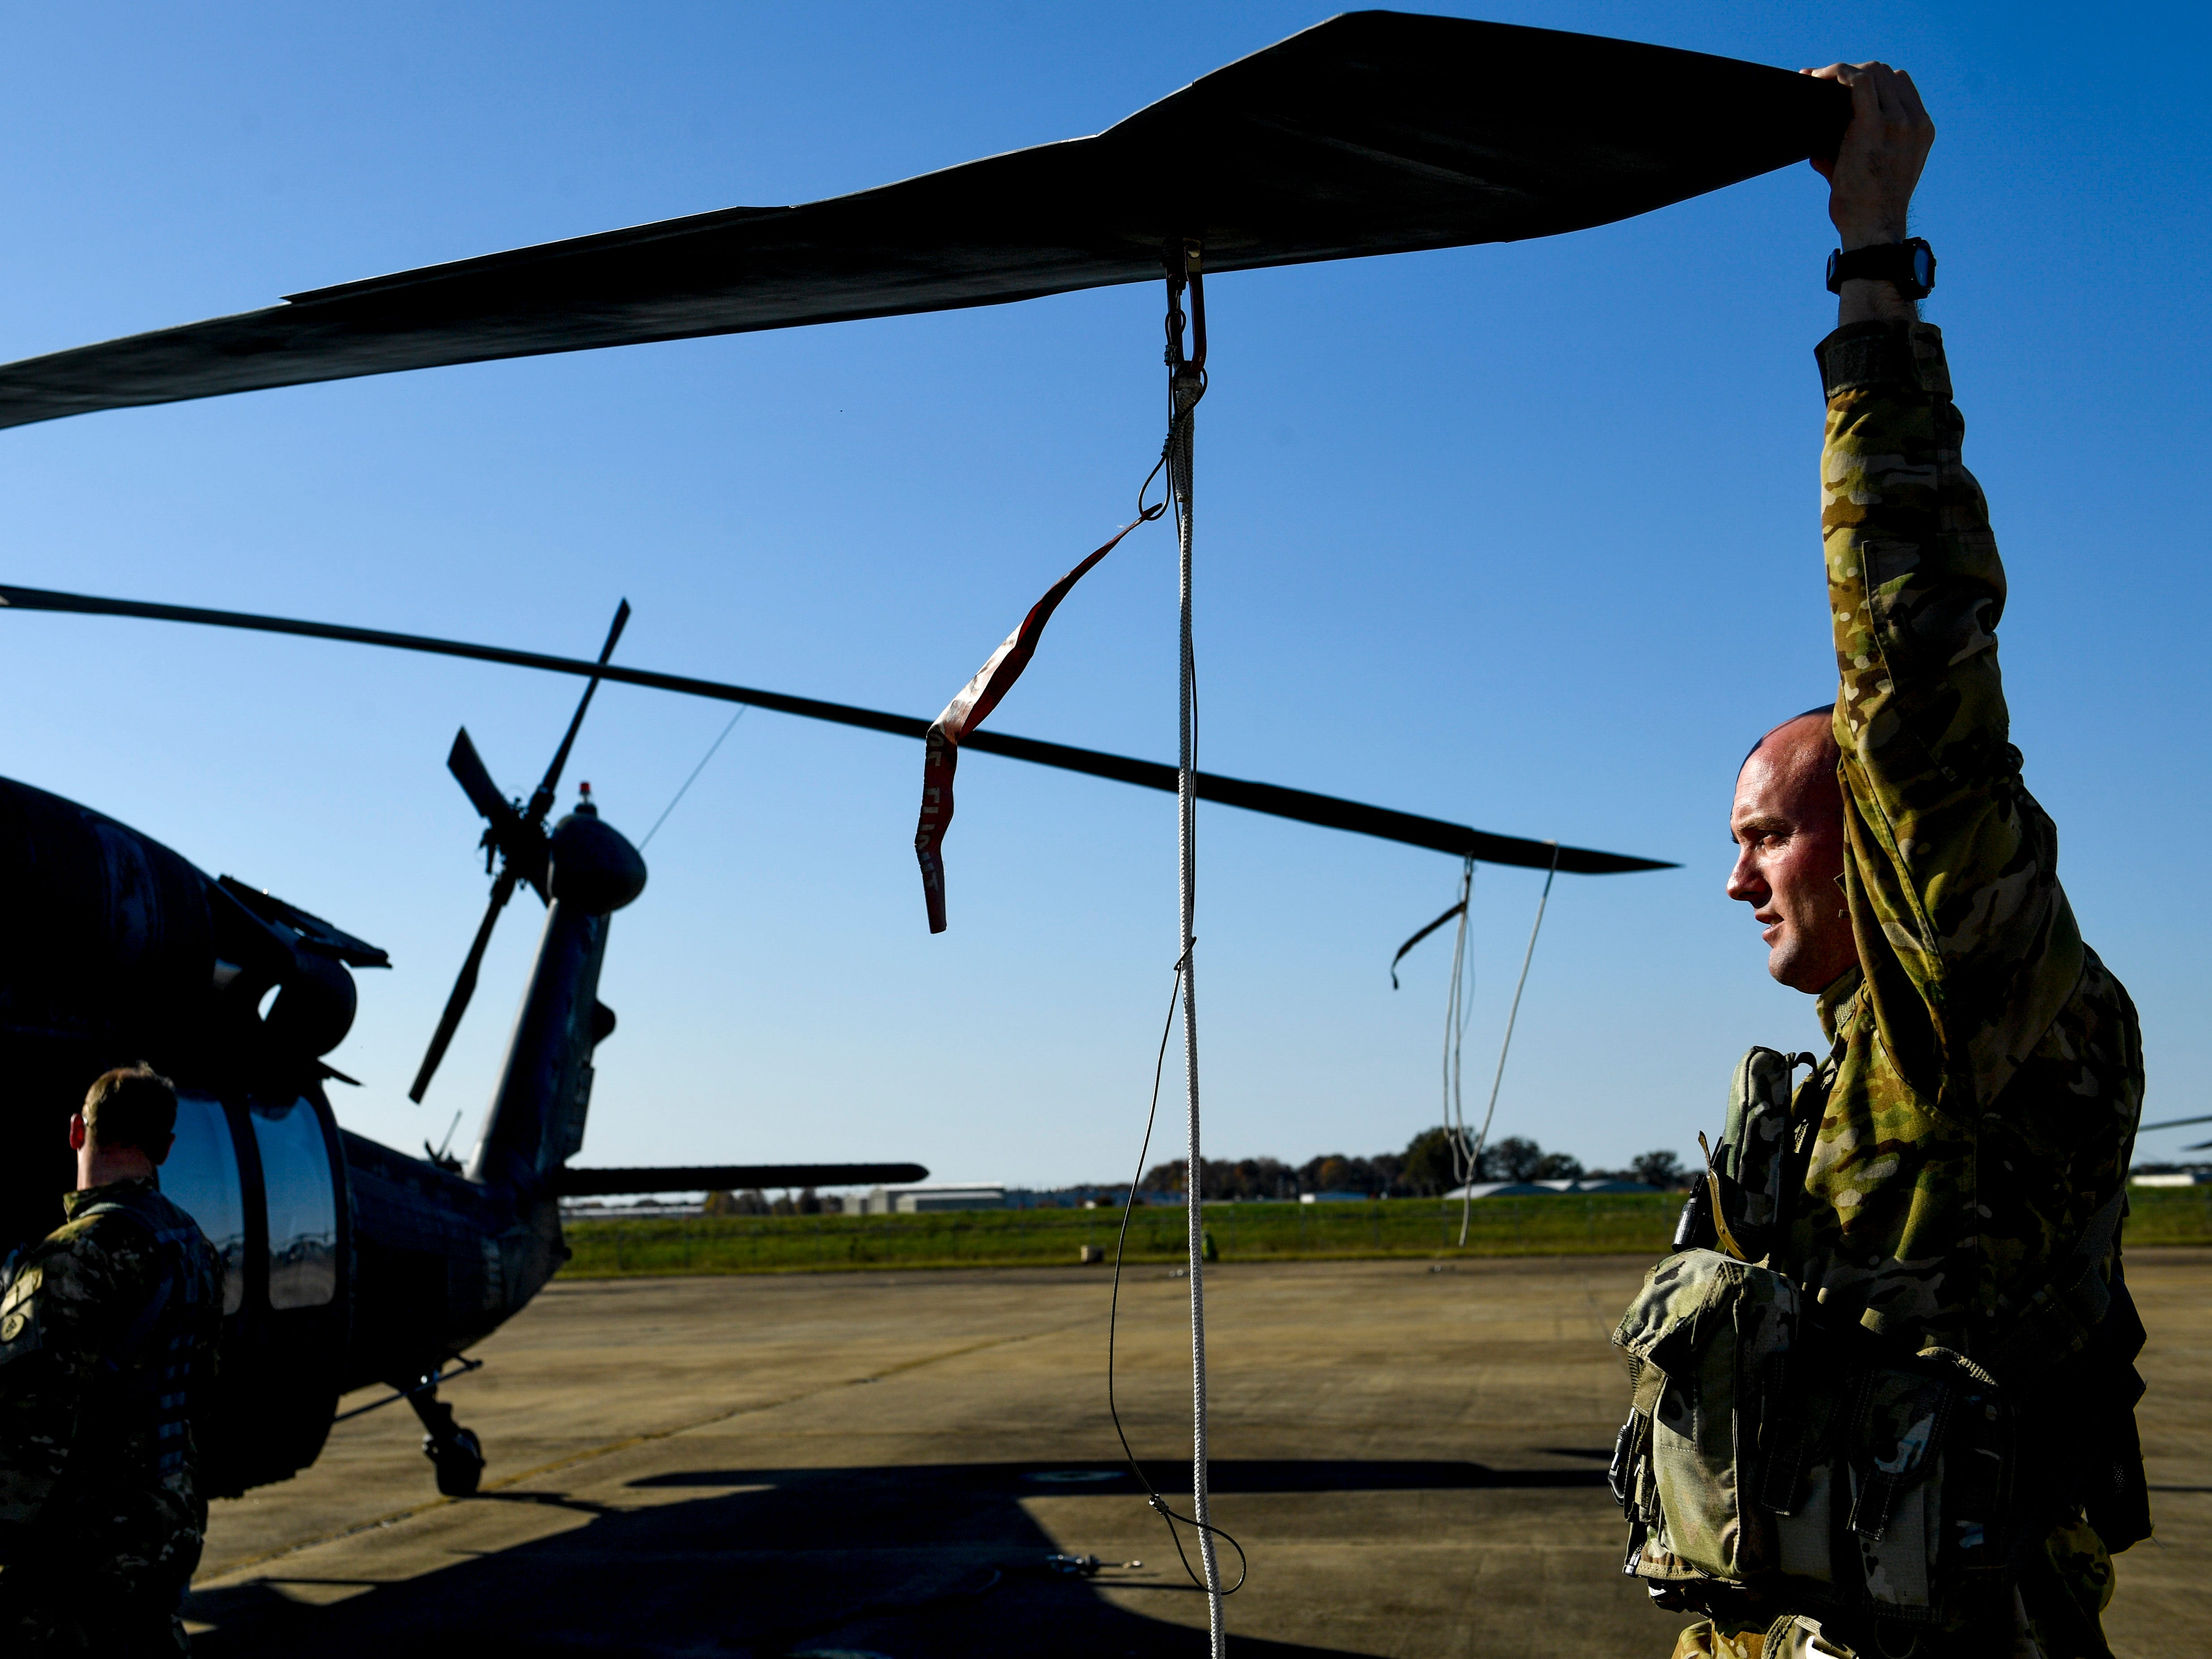 A National Guardsmen winds his helicopter blades into storage position during the annual Bosslift event put on by Employer Support of the Guard and Reserve (ESGR) and the Tennessee National Guard at Army Aviation Facility in Jackson, Tenn., on Thursday, Nov. 8, 2018.